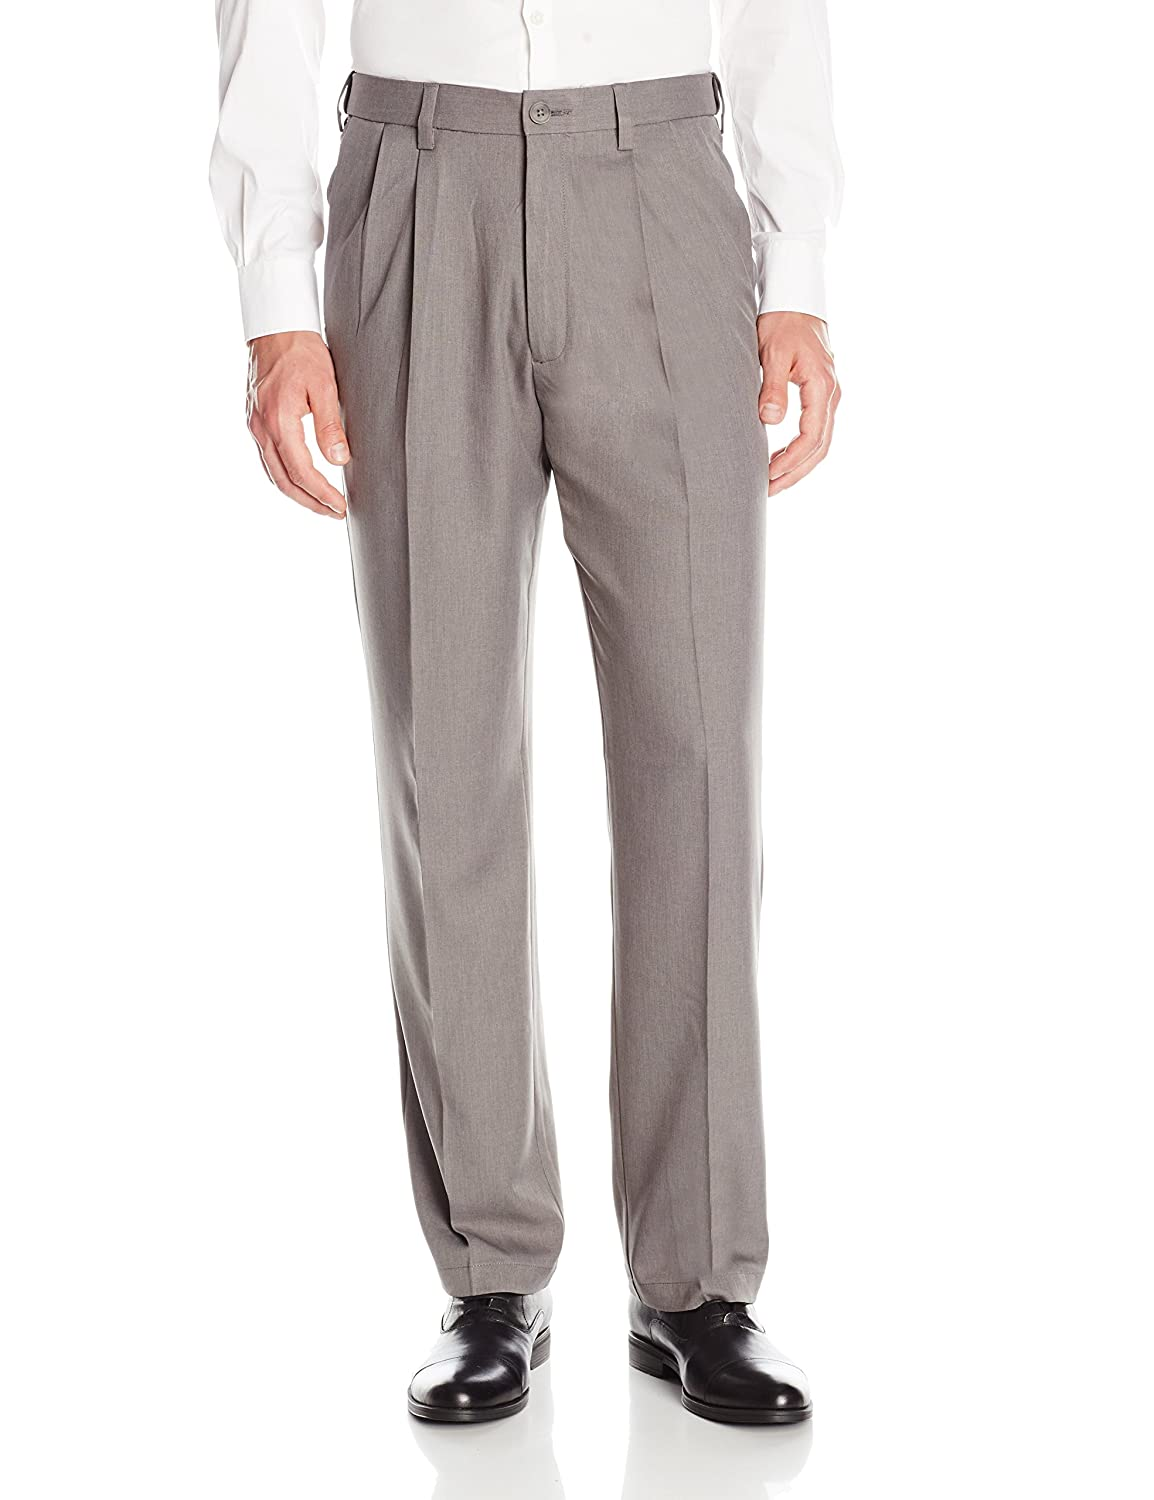 1ed1879fd9 Haggar Men's Cool 18 Pro Classic Fit Pleat Front Expandable Waist Pant,  Heather Grey, 44Wx29L at Amazon Men's Clothing store: